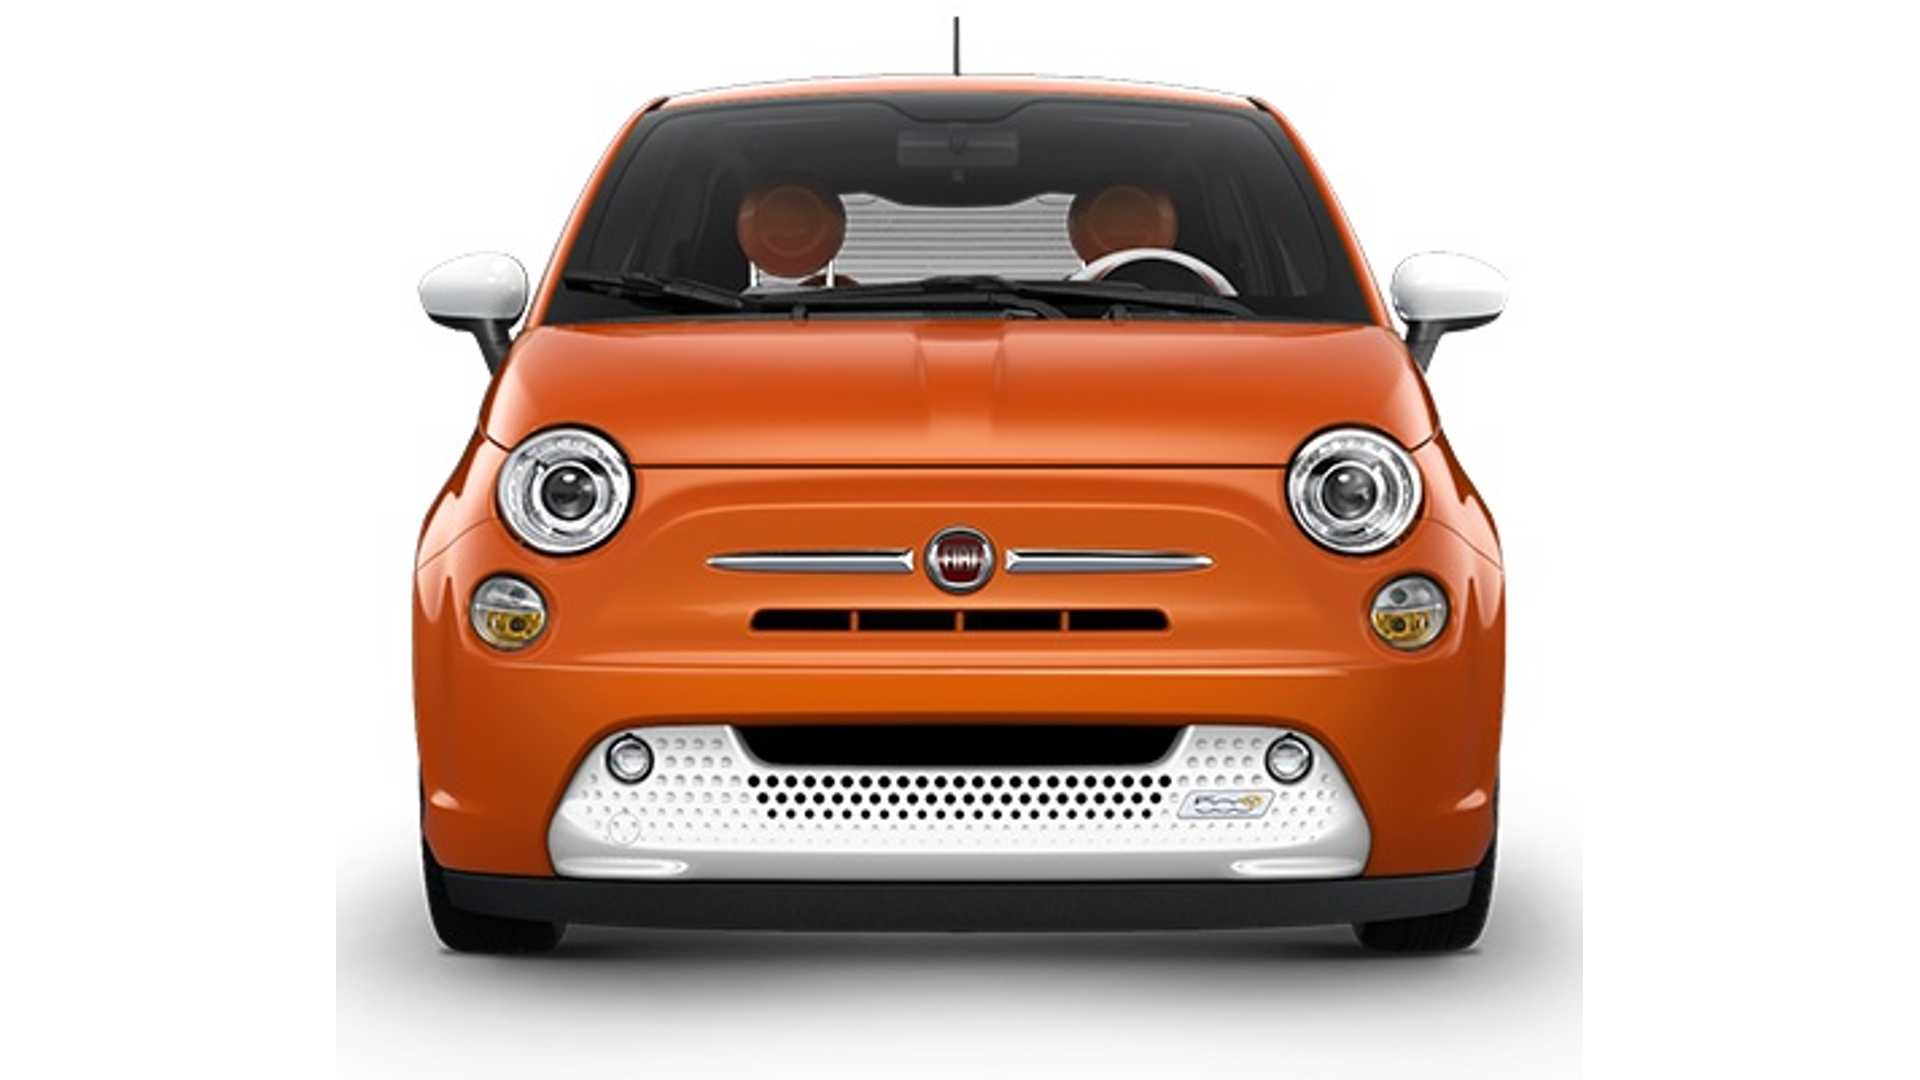 0 Down Lease Deals >> Black Friday Saturday Sunday Lease Deal Fiat 500e For